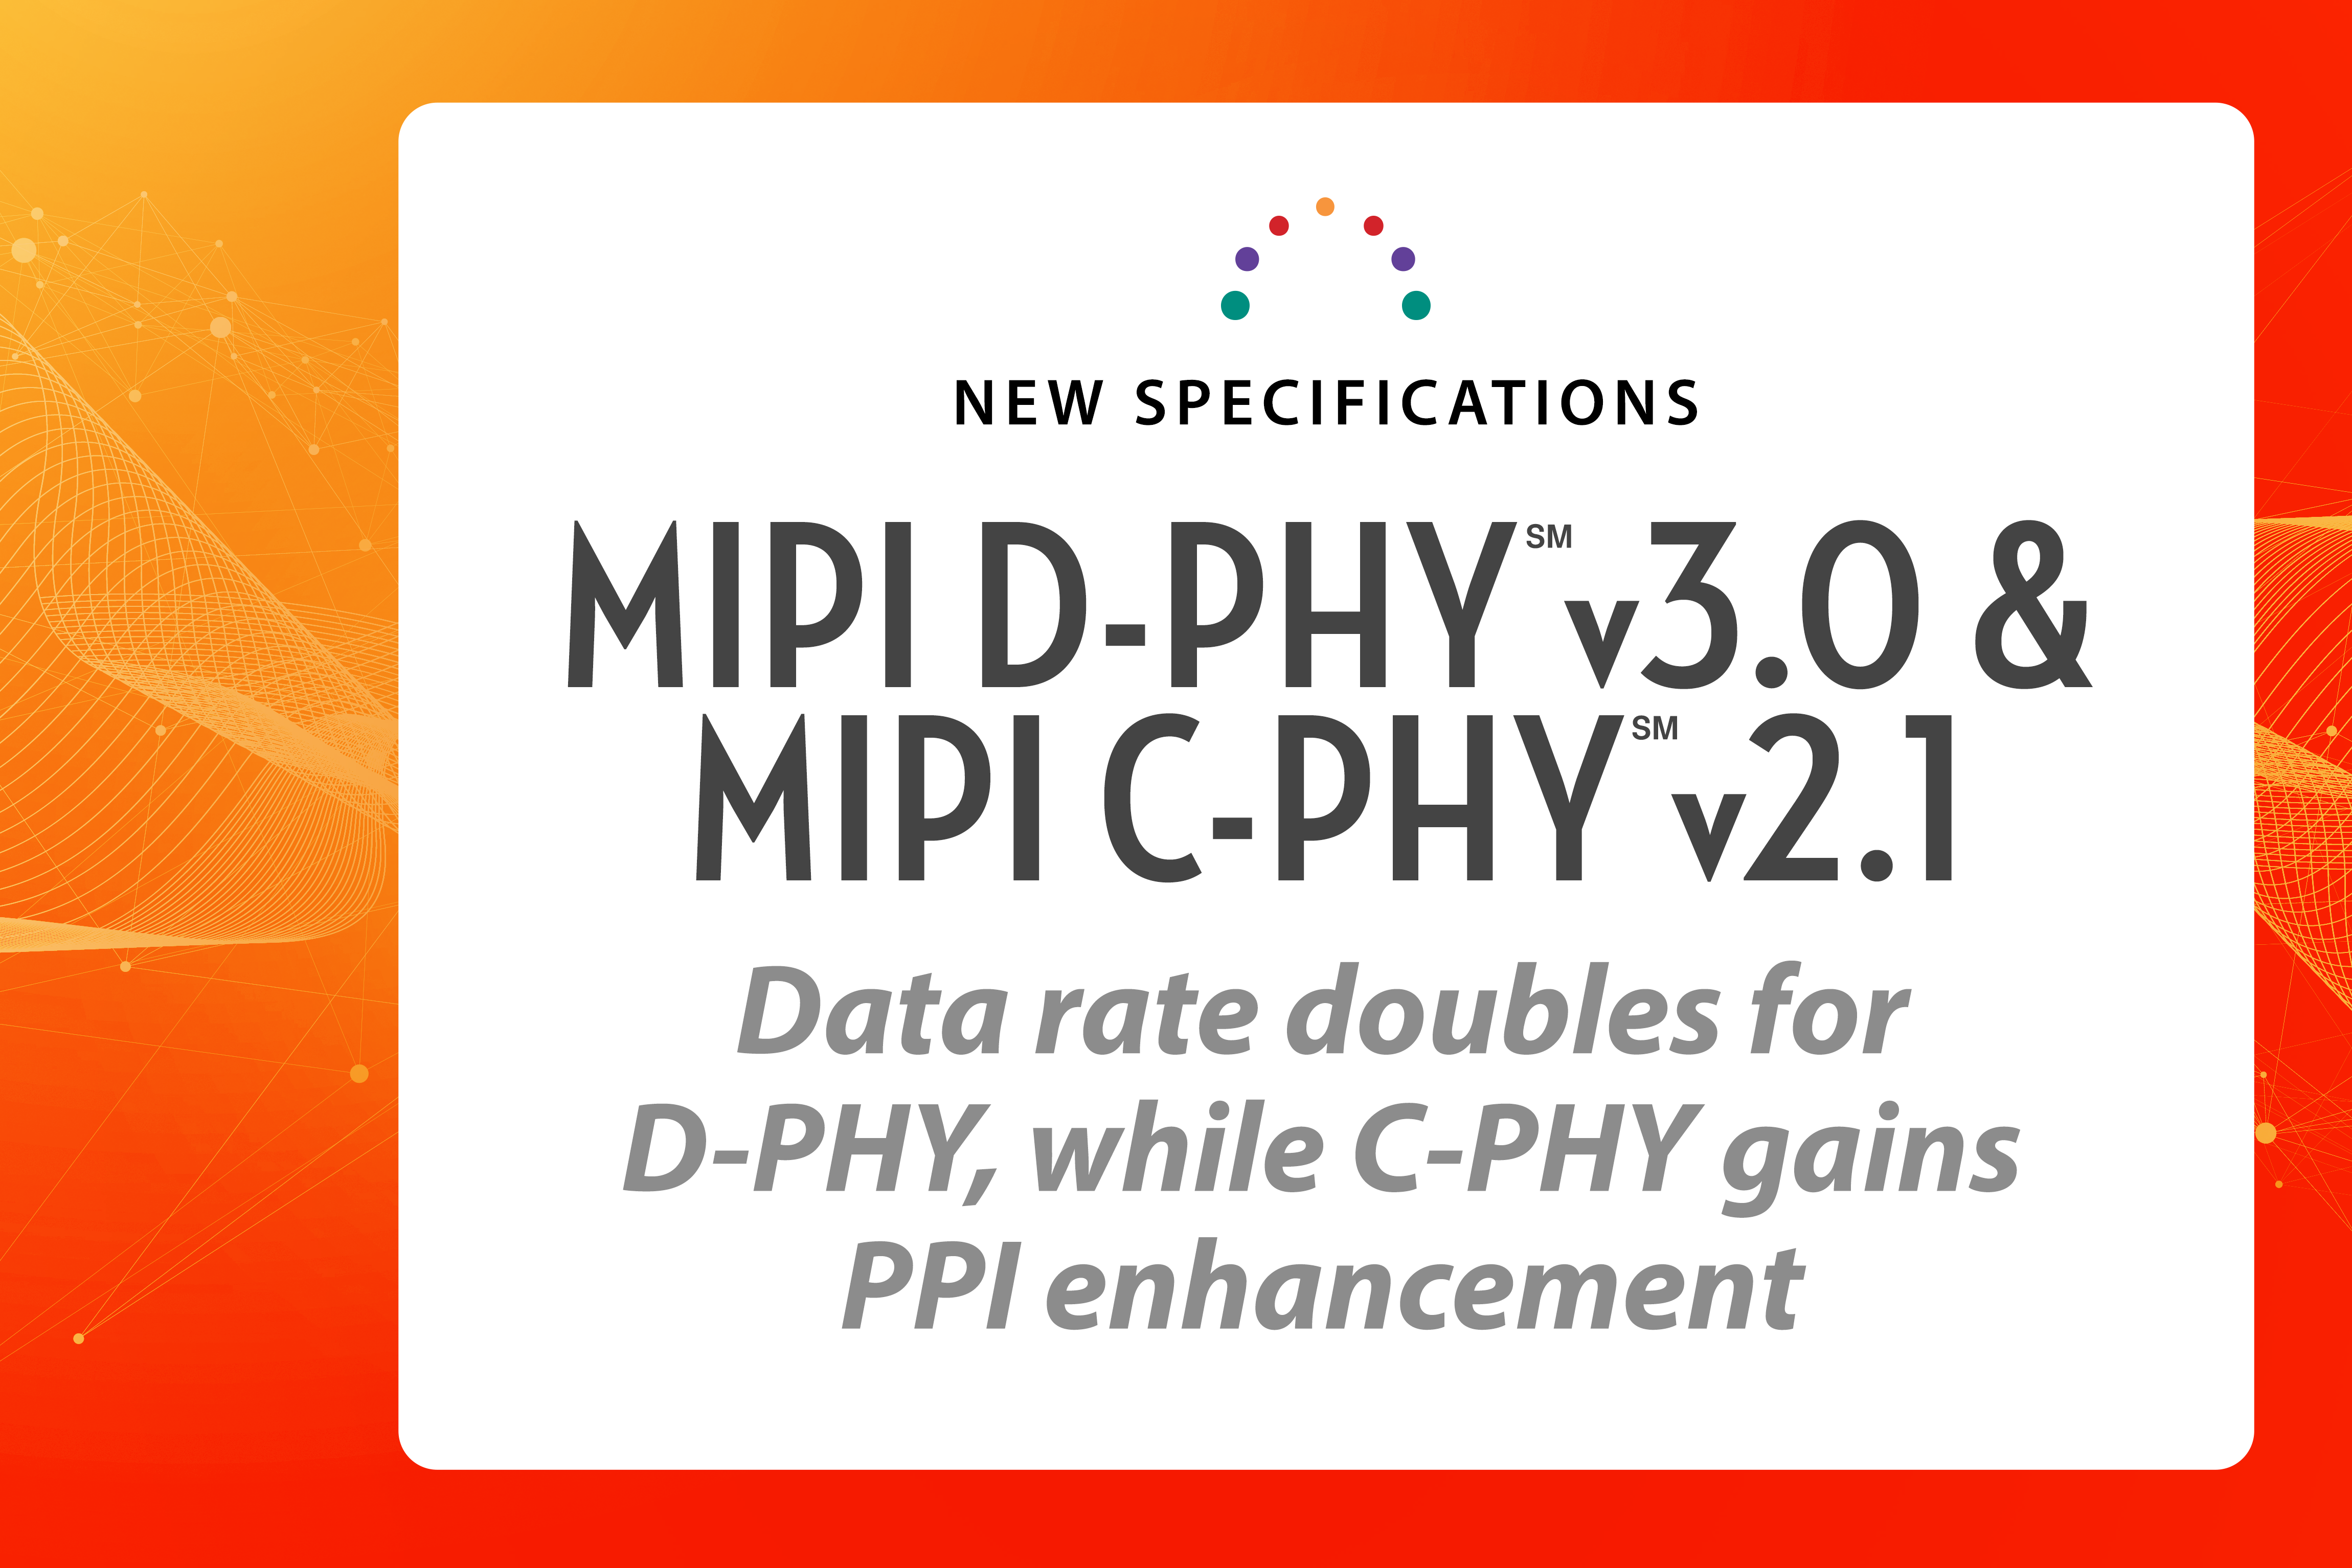 New MIPI D-PHY v3.0 and C-PHY v2.1